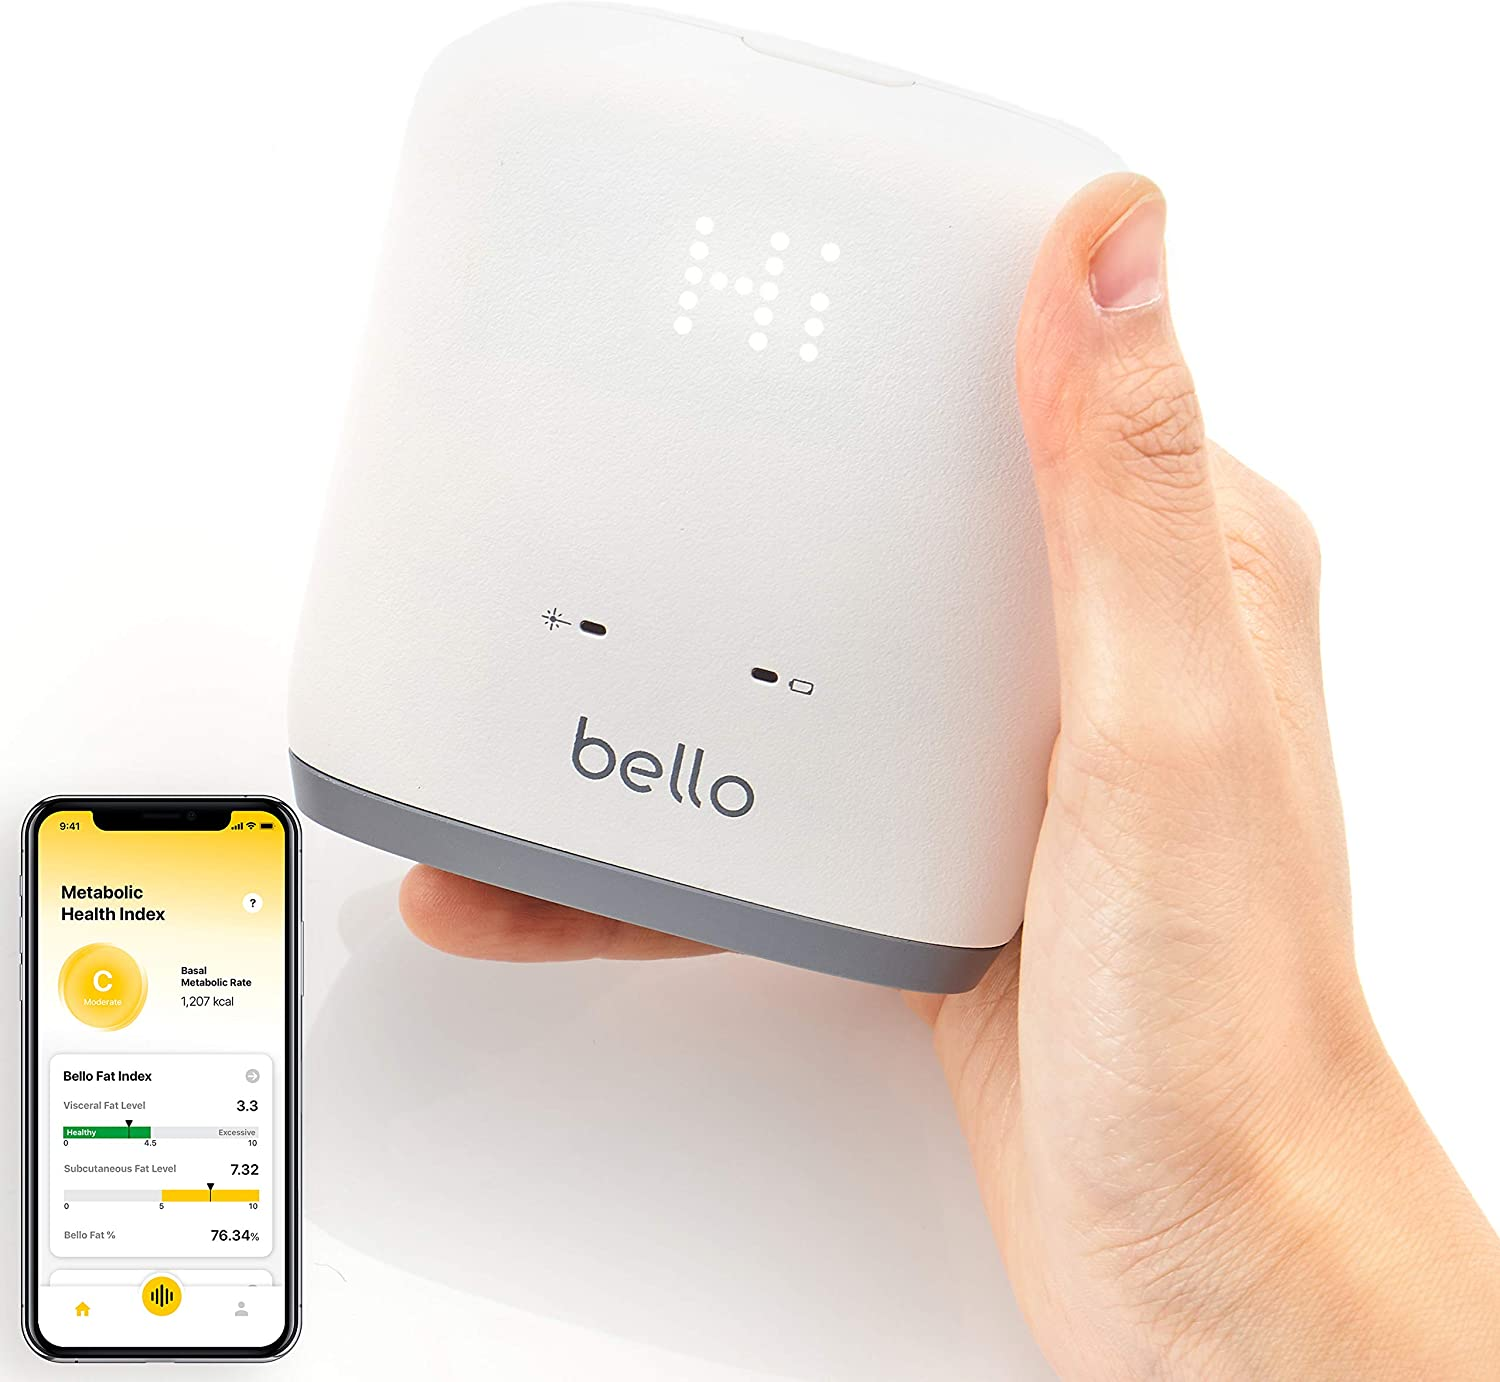 Bello - Belly Fat Scanner - Accurate Metabolic Health Analyzer with Smart App - Bluetooth, Handheld, Compatible with Apple Health and Google Fit